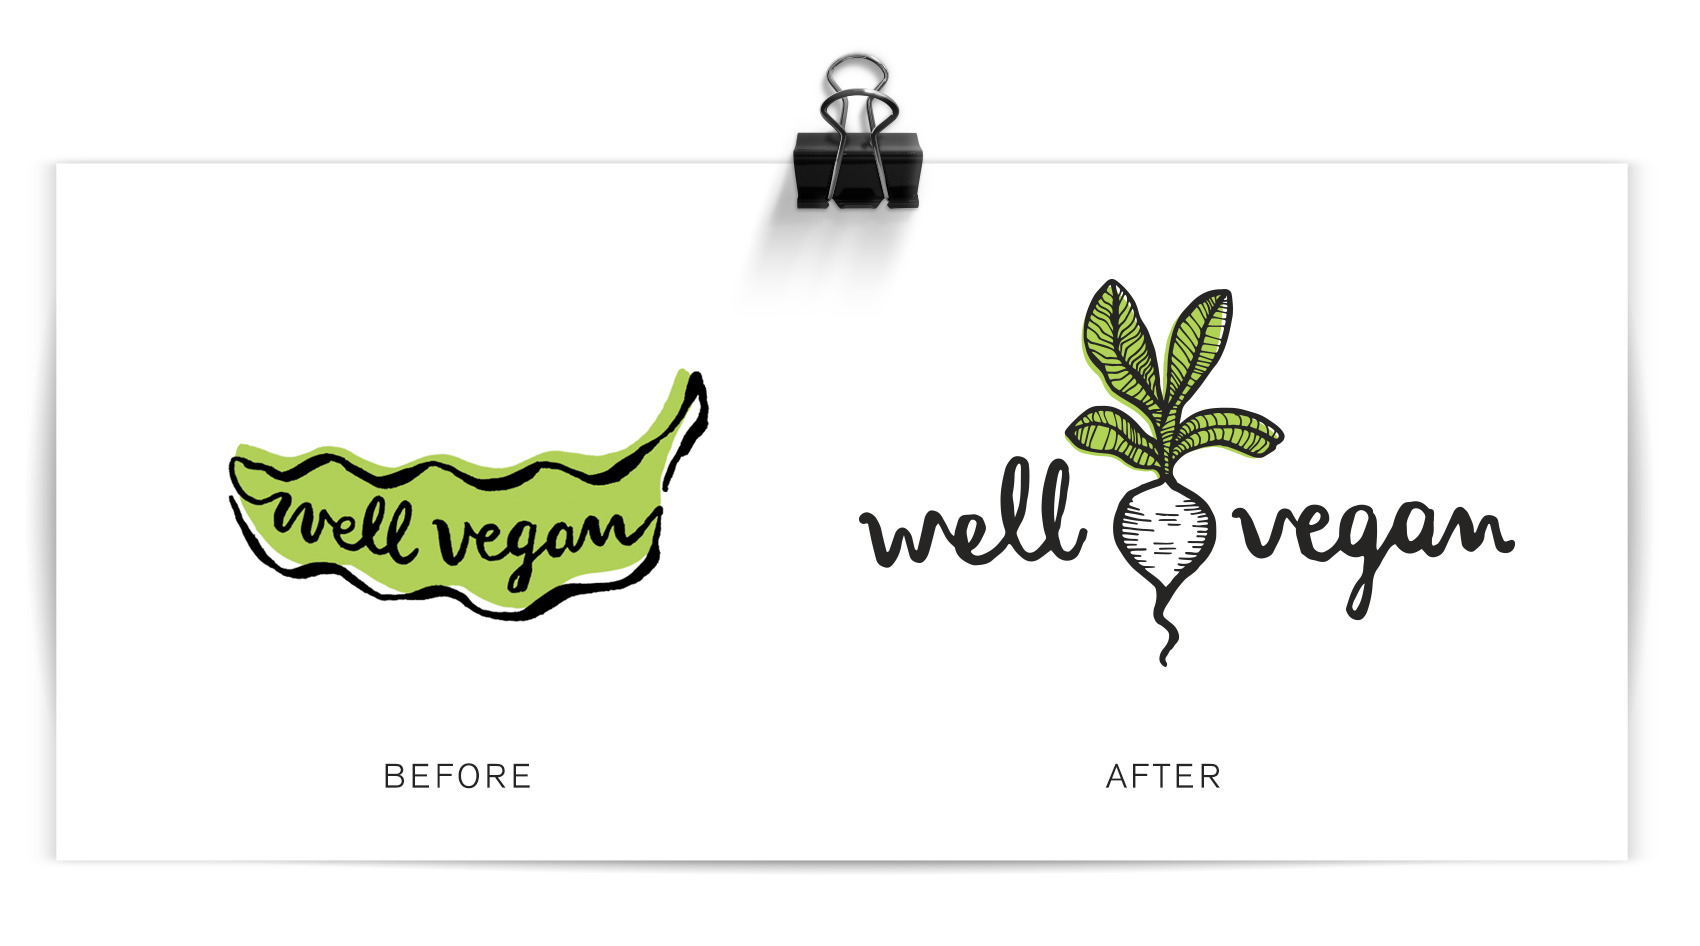 before and after logo for well vegan, from a smiling pea pod to a white radish